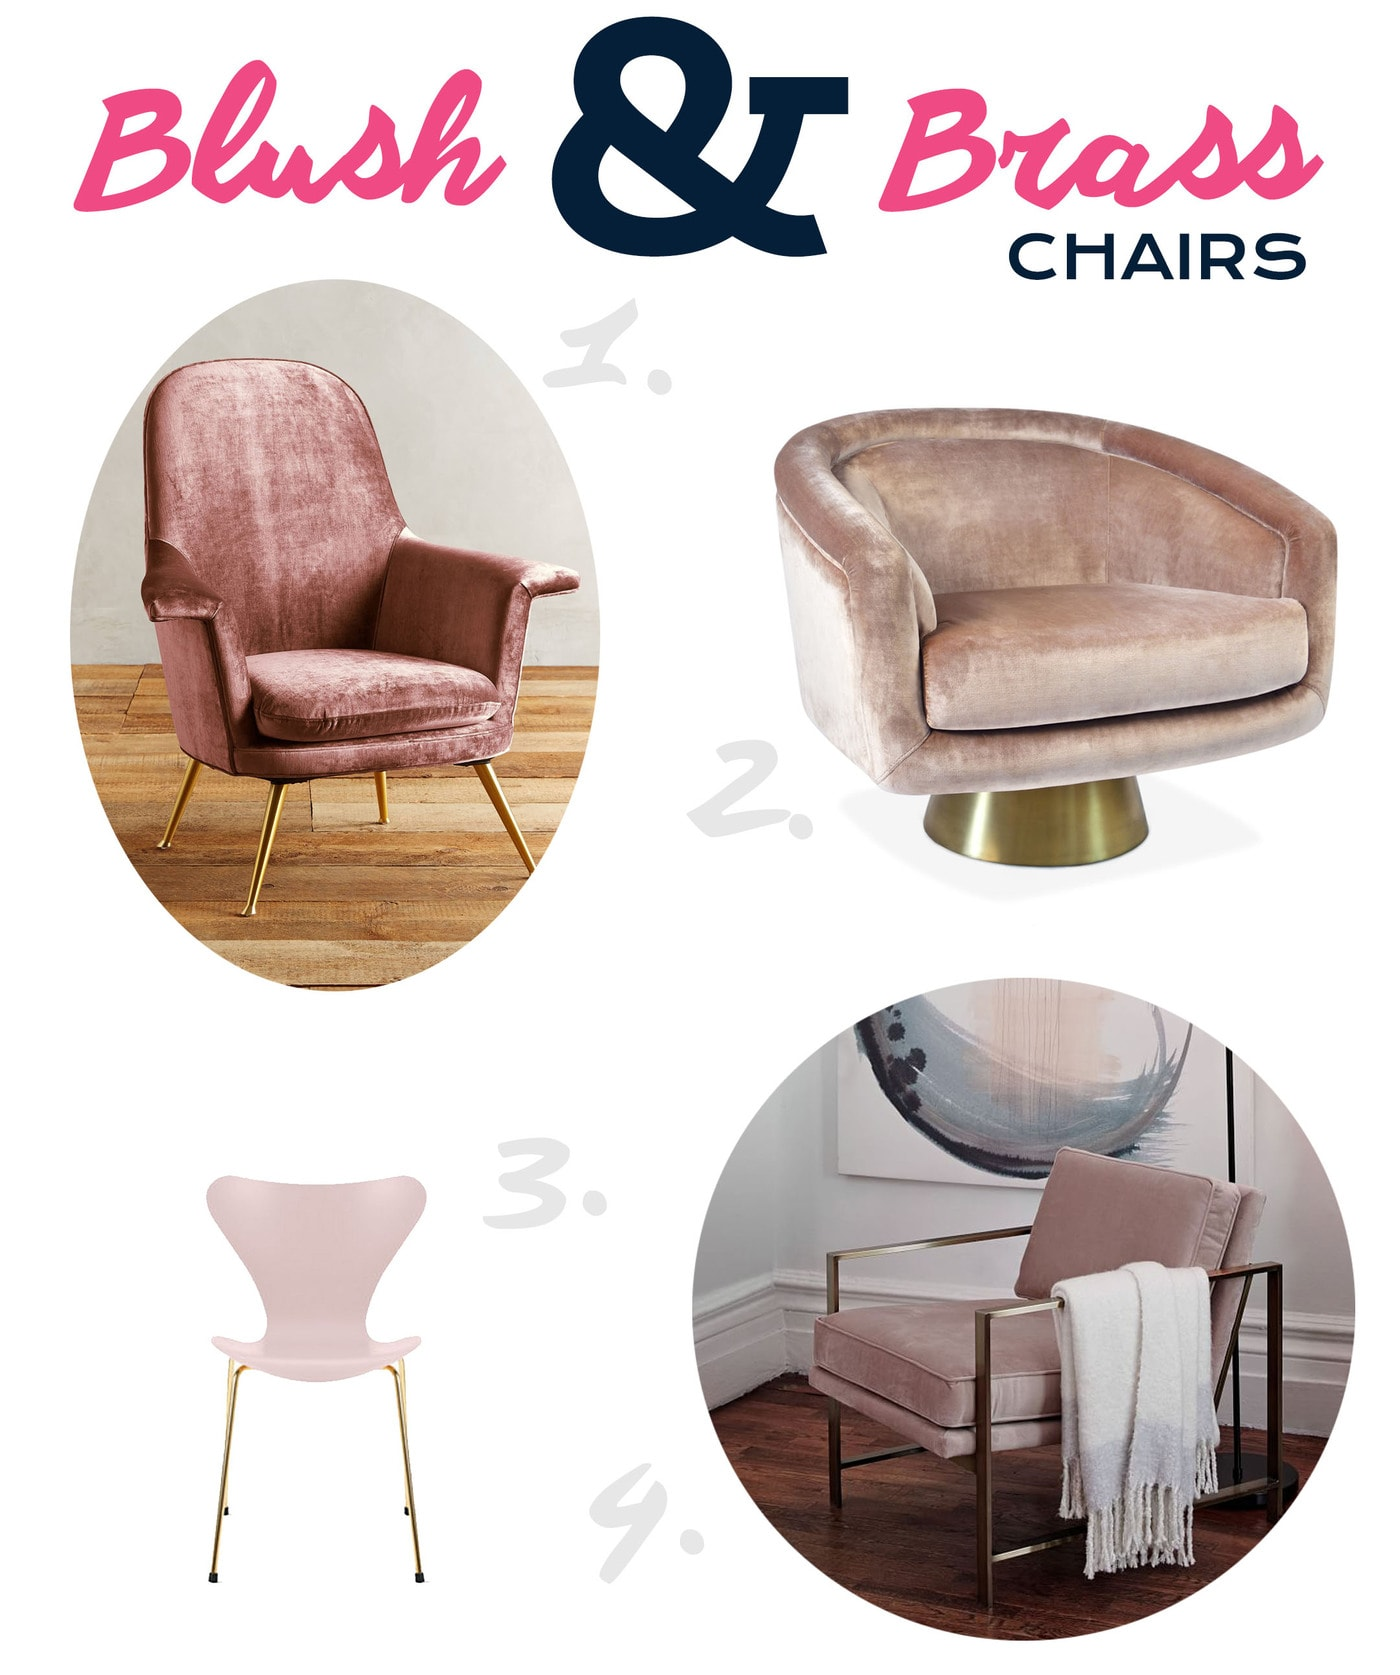 Selection of arm chairs in blush pink and brass. Featuring chairs from Jonathan Adler, Anthropologie, and West Elm.